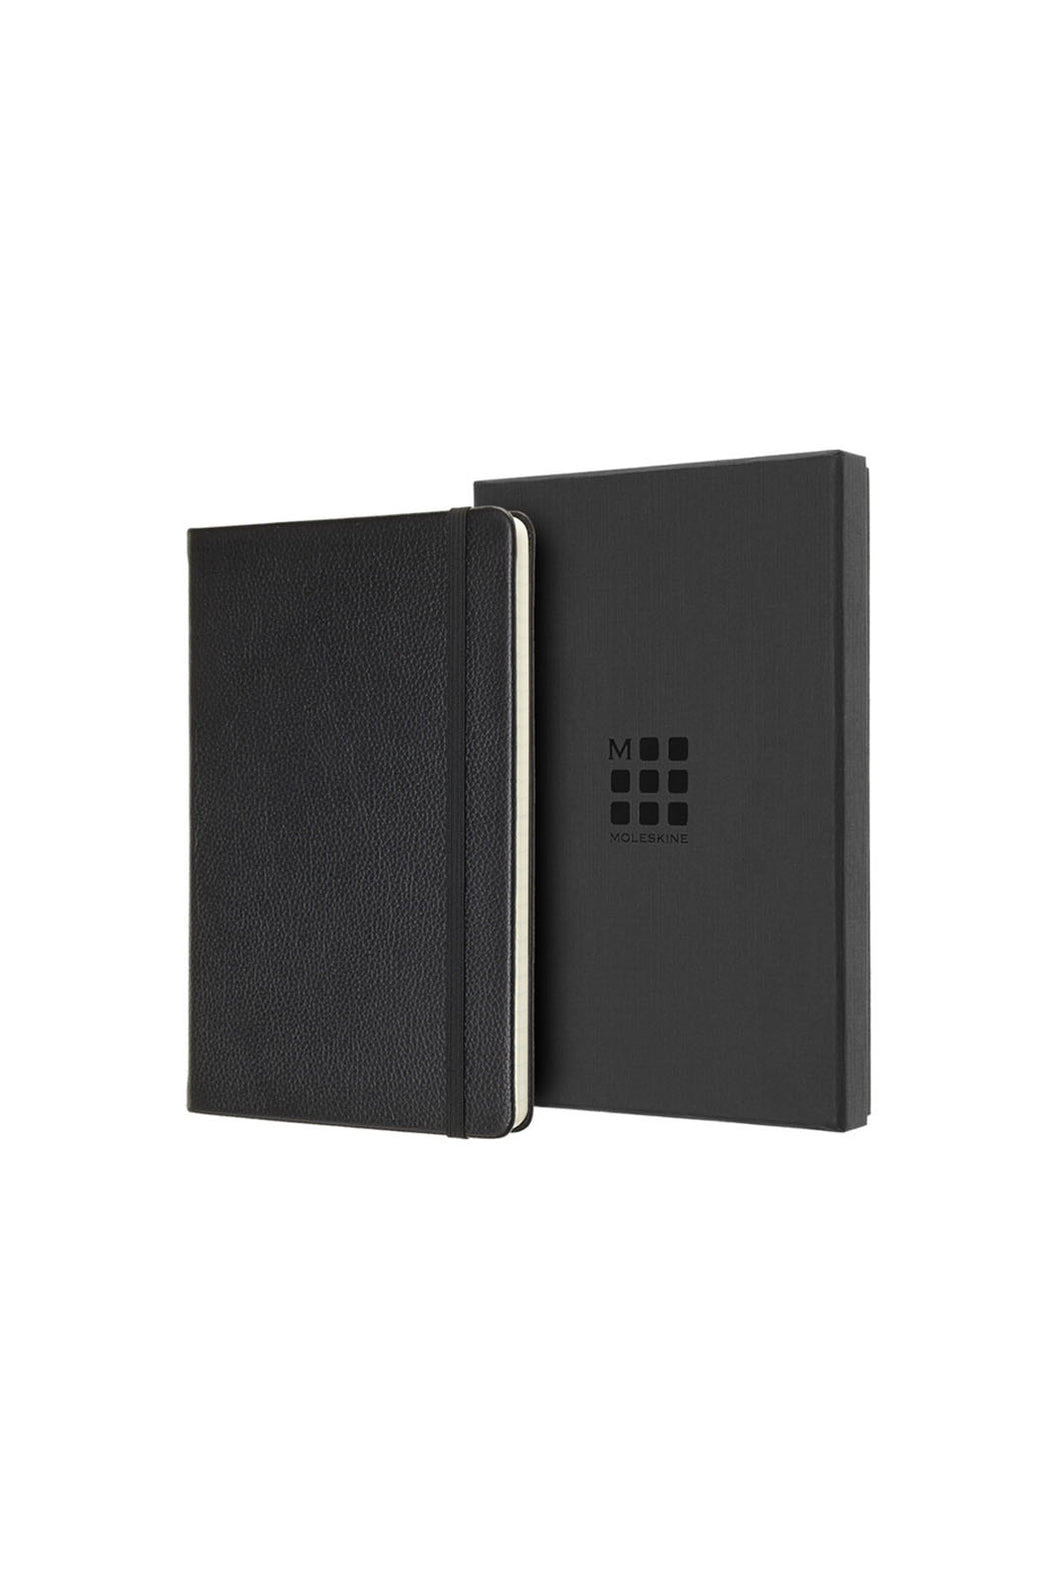 Moleskine - Genuine Leather Notebook - Ruled - Large - Black